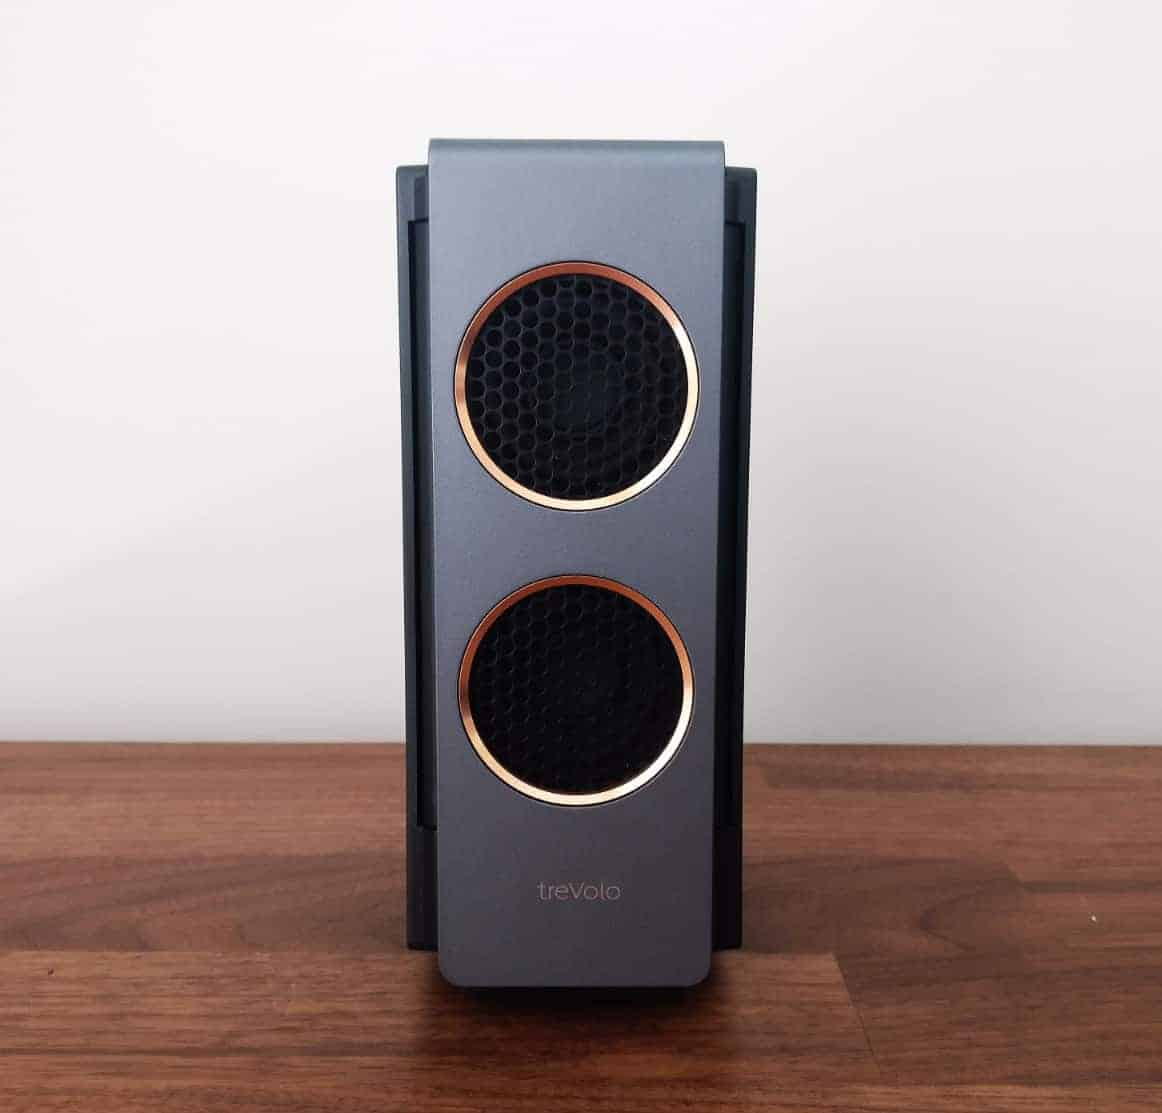 benq-trevolo-s-photos24 BenQ treVolo S Bluetooth Portable Speaker Review